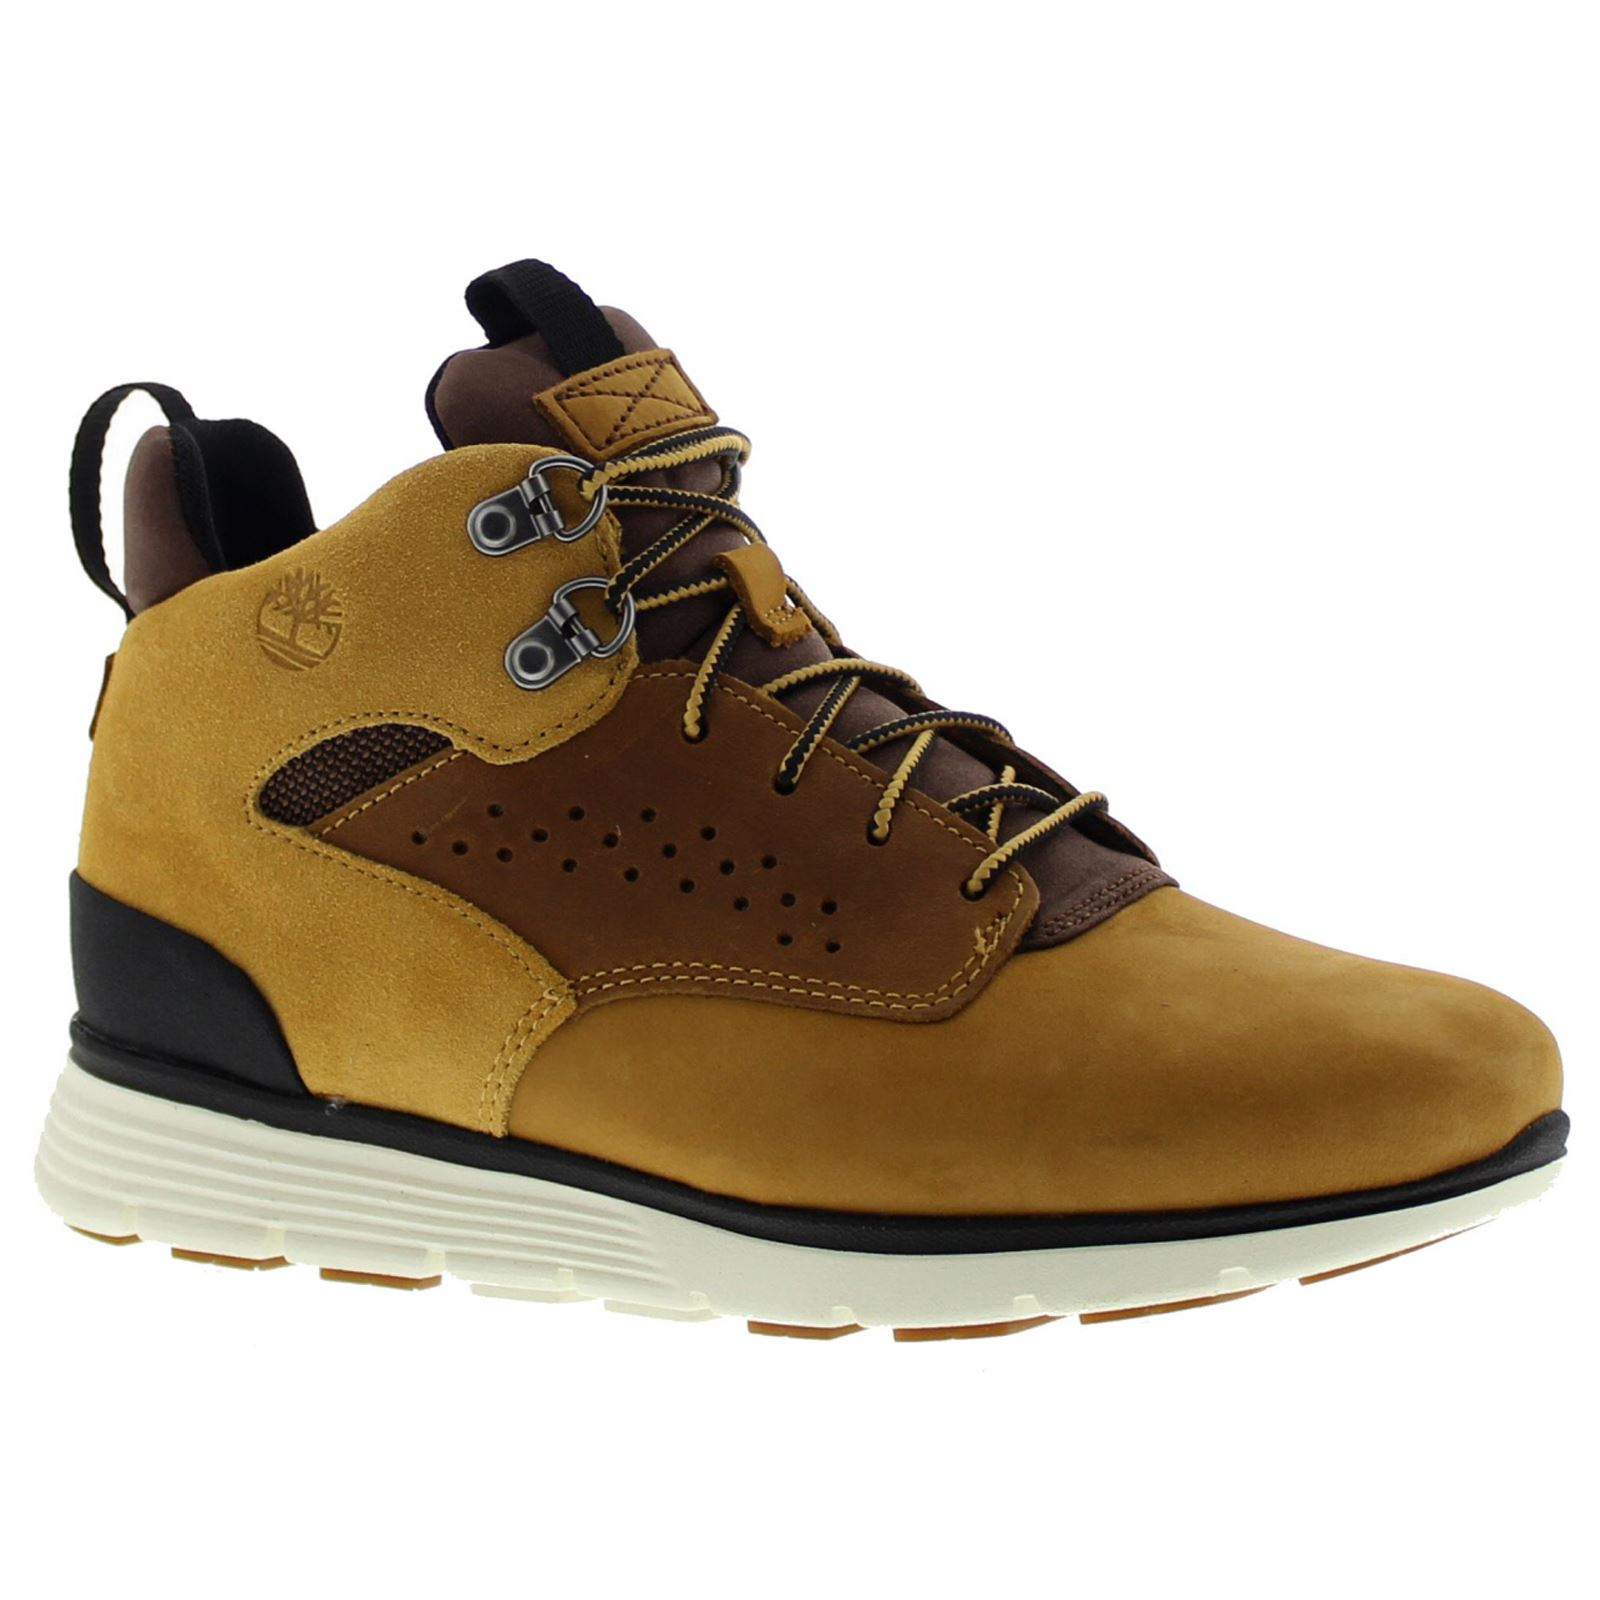 outlet sale best value enjoy free shipping Details about Timberland Killington Hiker Chukka Wheat Womens Leather  Outdoor Ankle Boots